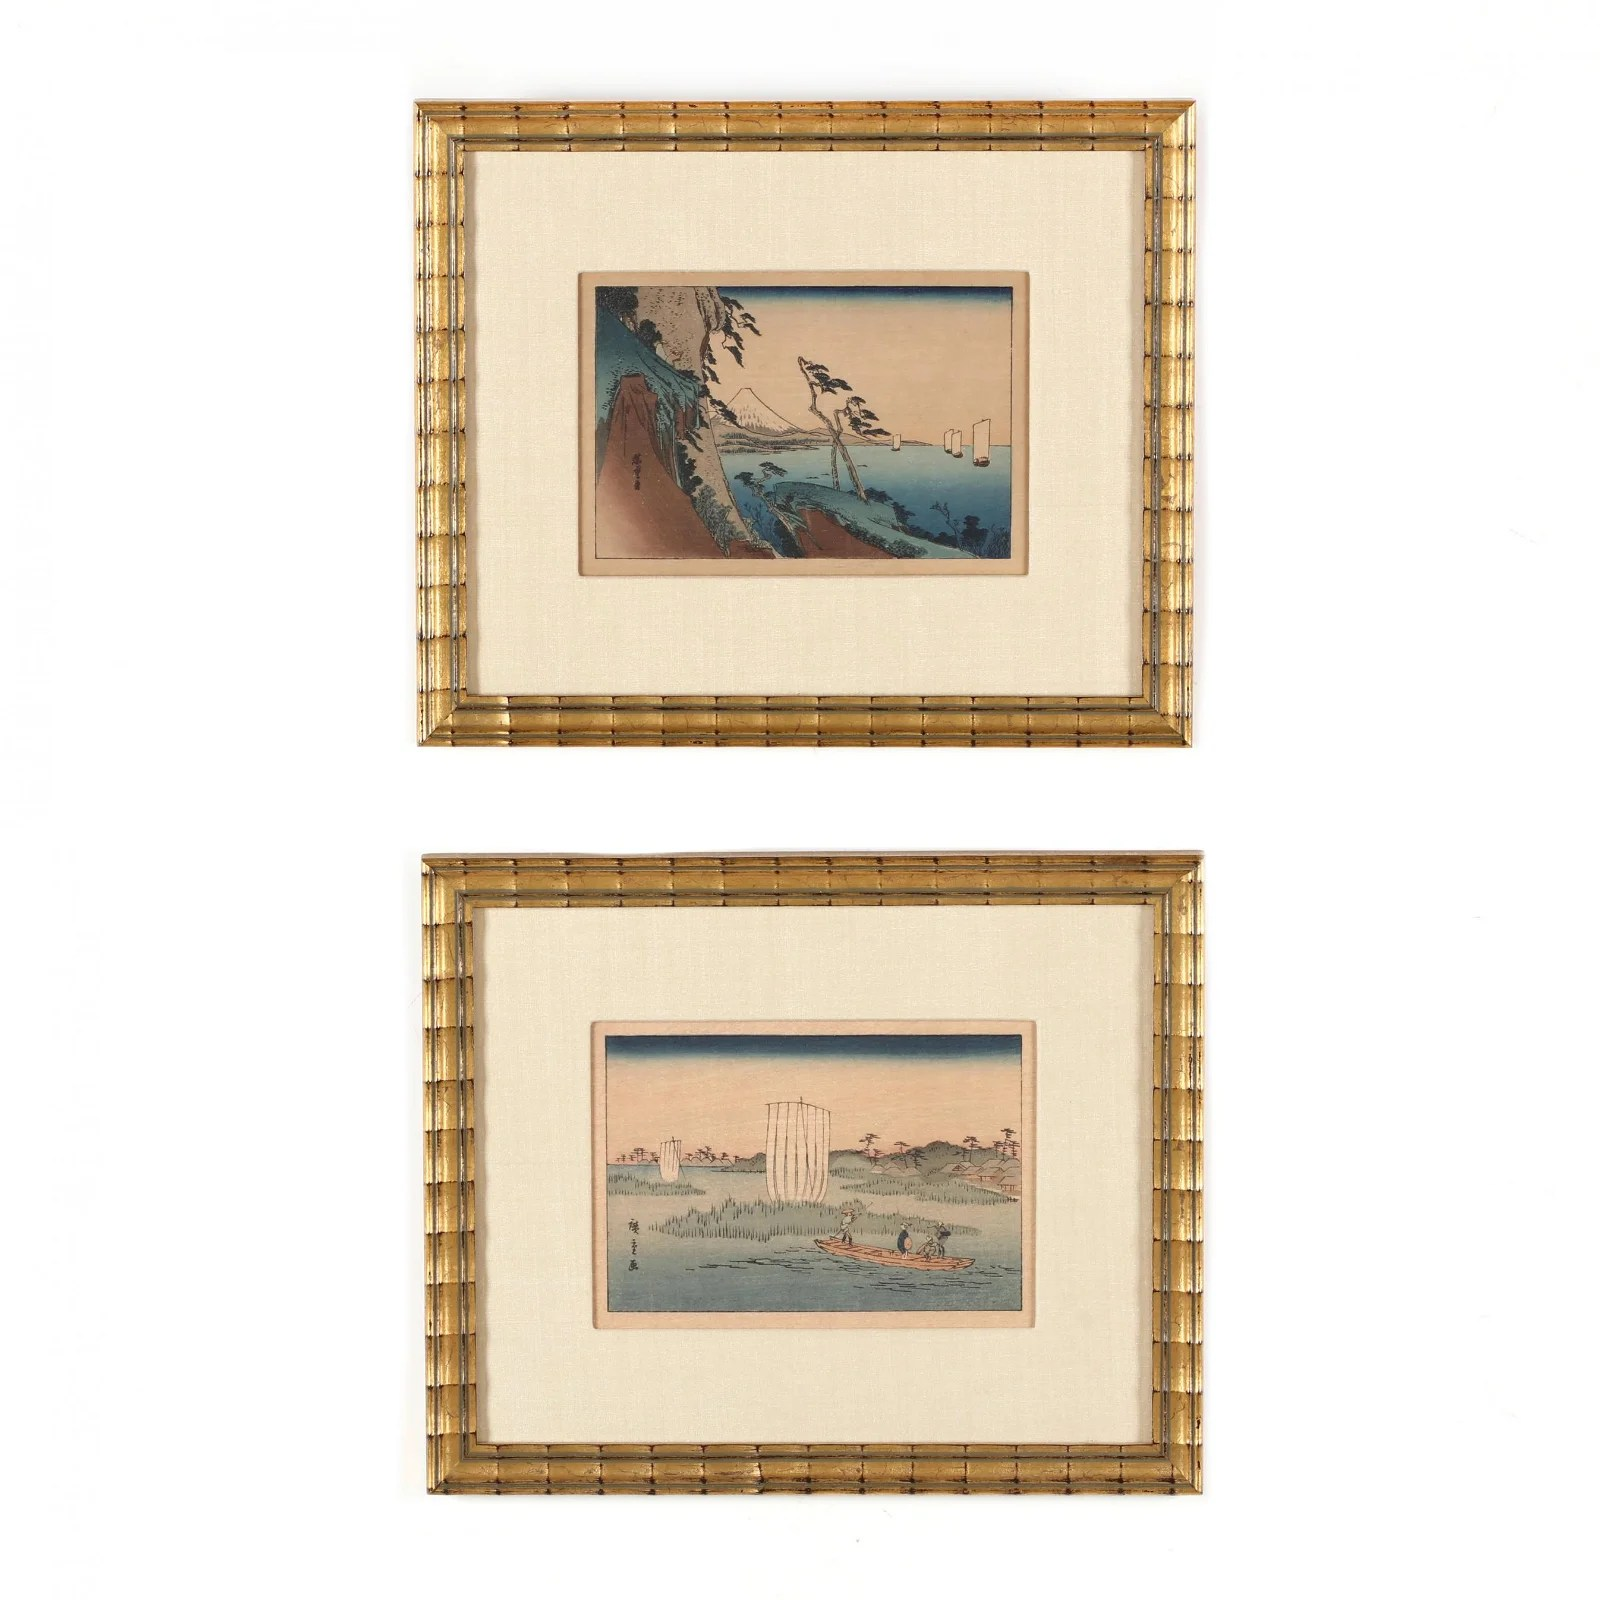 Two Small Framed Japanese Woodblock Prints